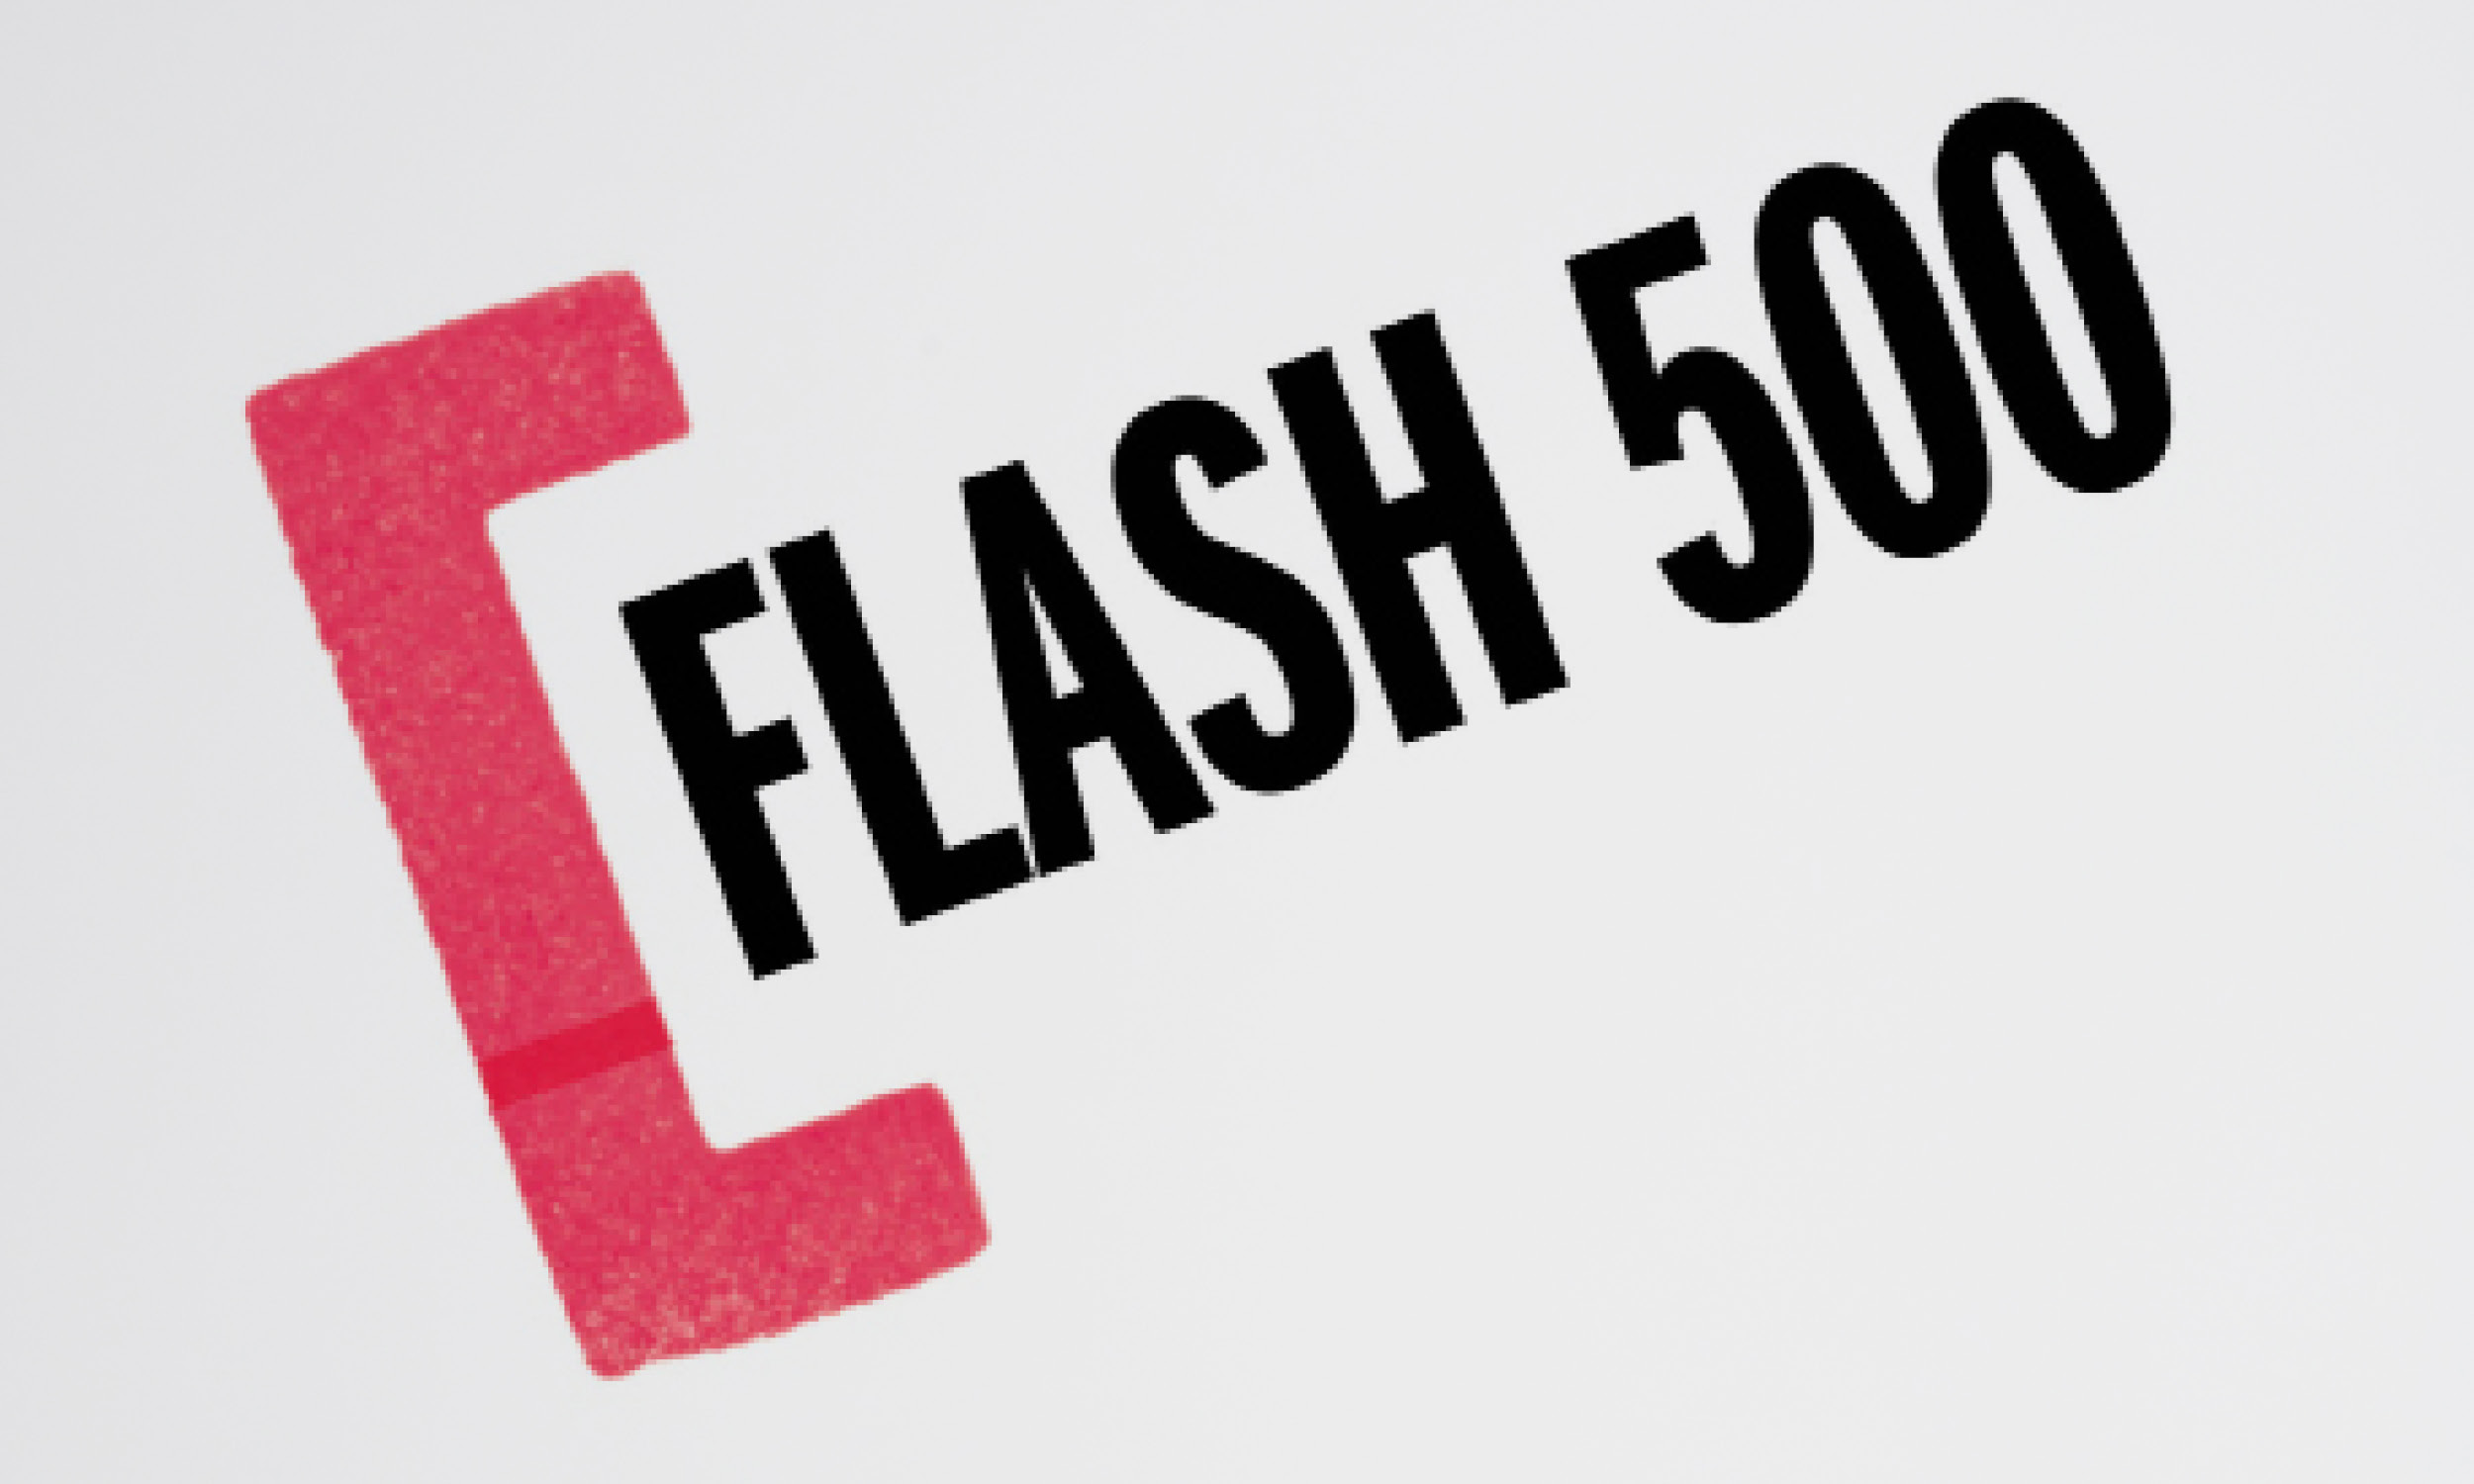 Flash500-logo-LR.jpg